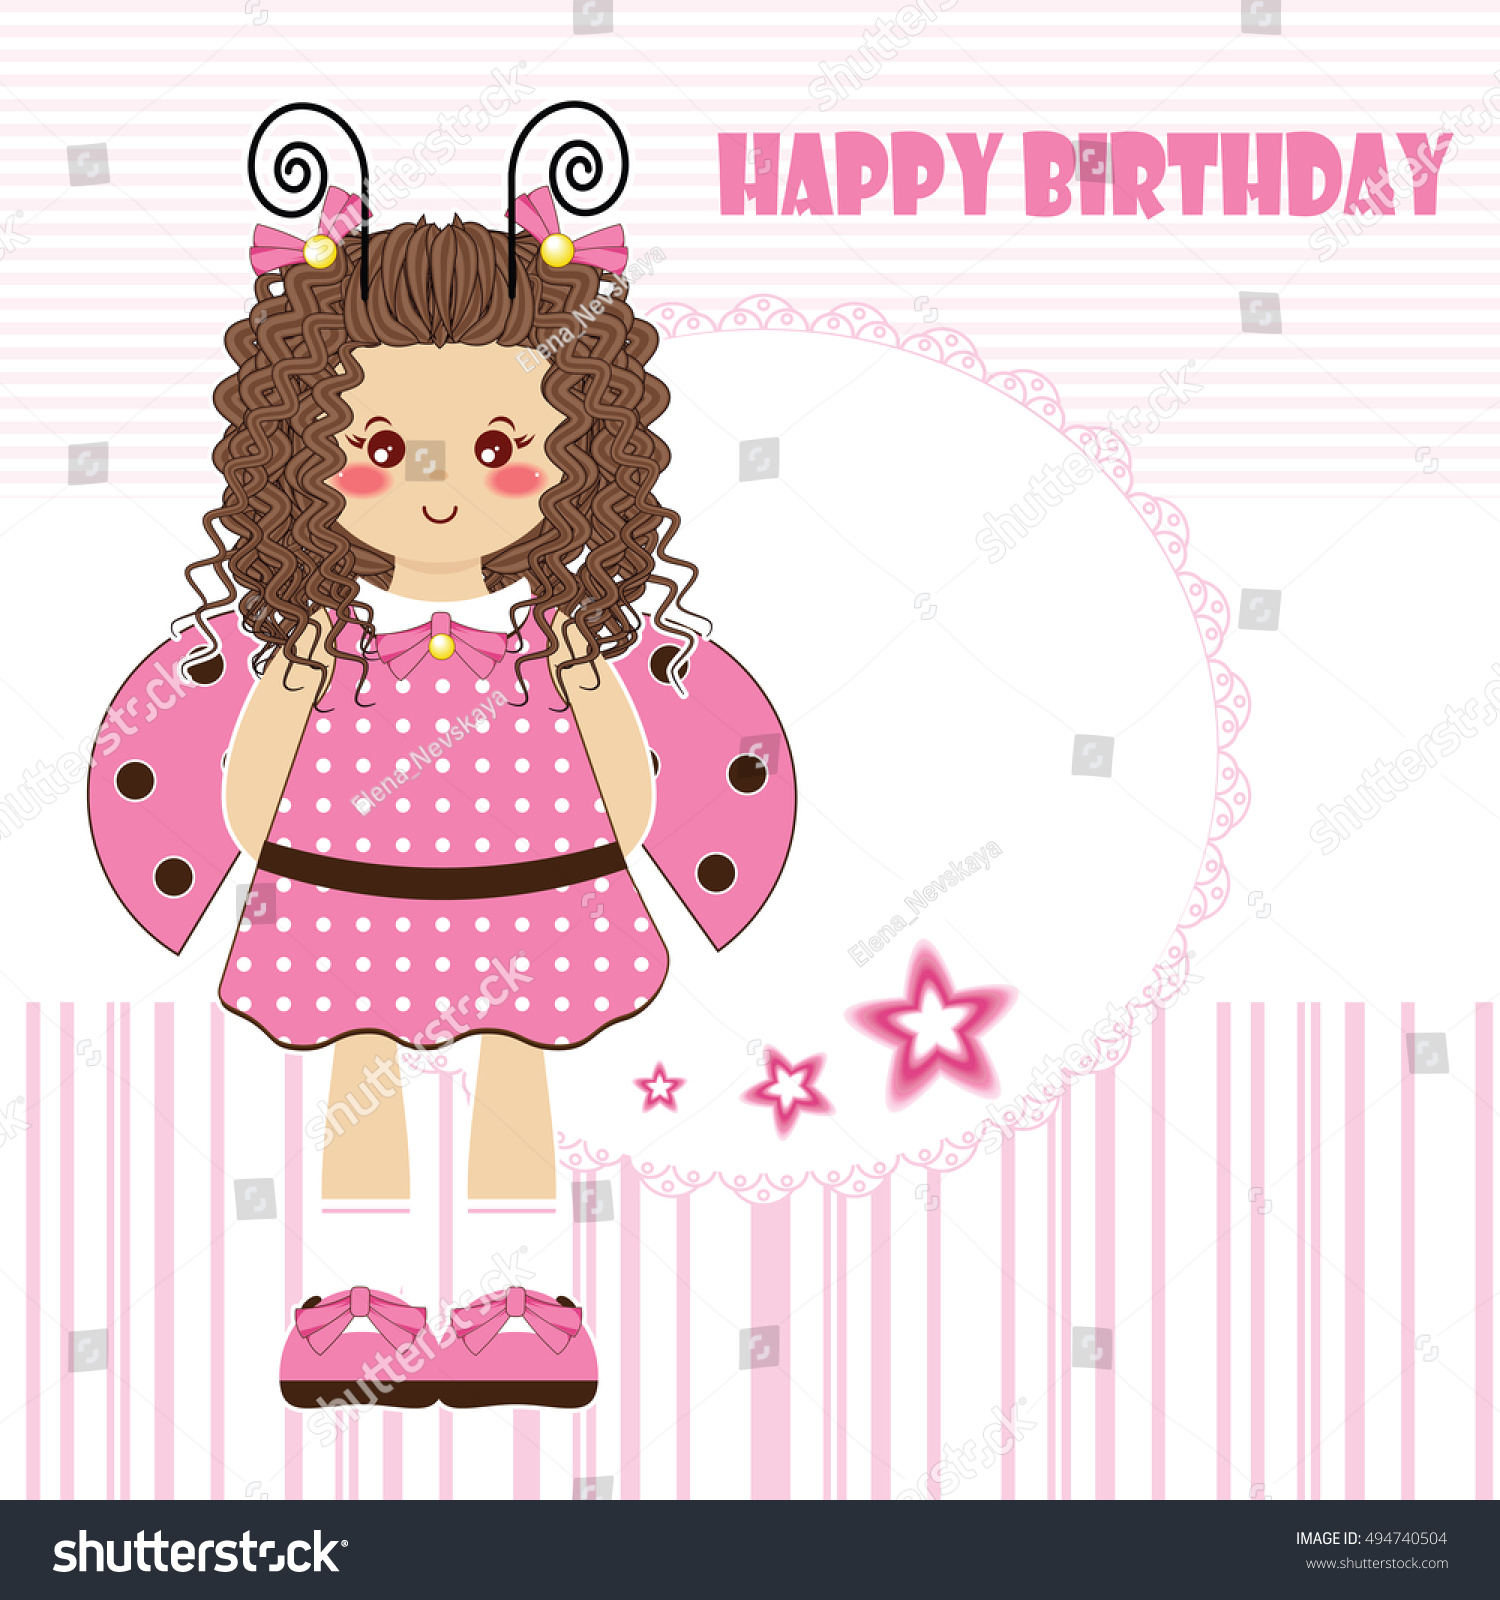 Happy birthday greeting card kawaii little stock vector 494740504 happy birthday greeting card kawaii little girl with curly hair and ladybug wings tender kristyandbryce Image collections